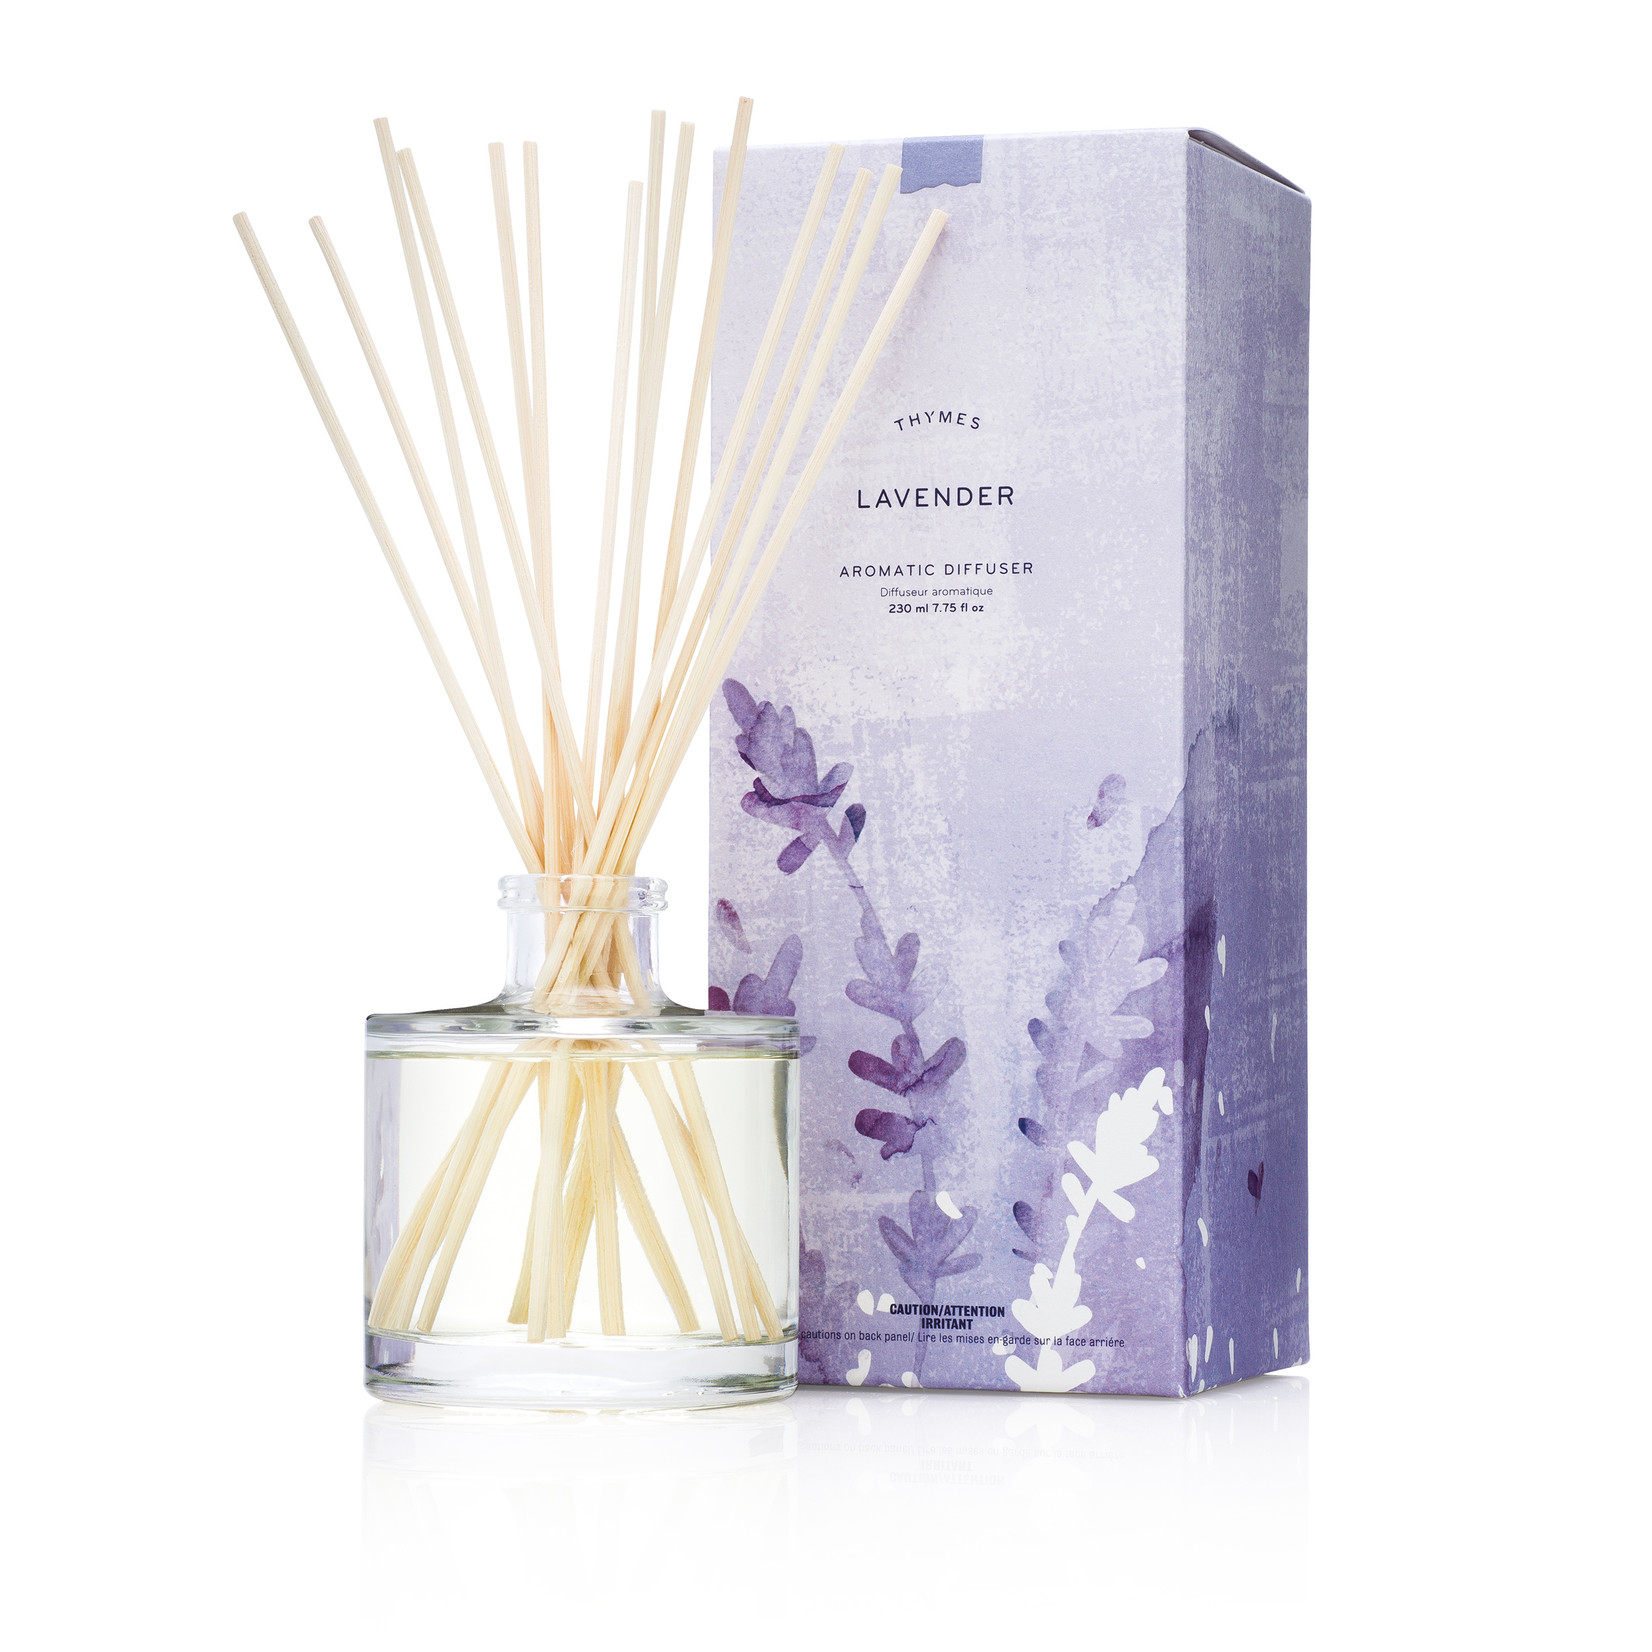 Thymes Aromatic Diffuser